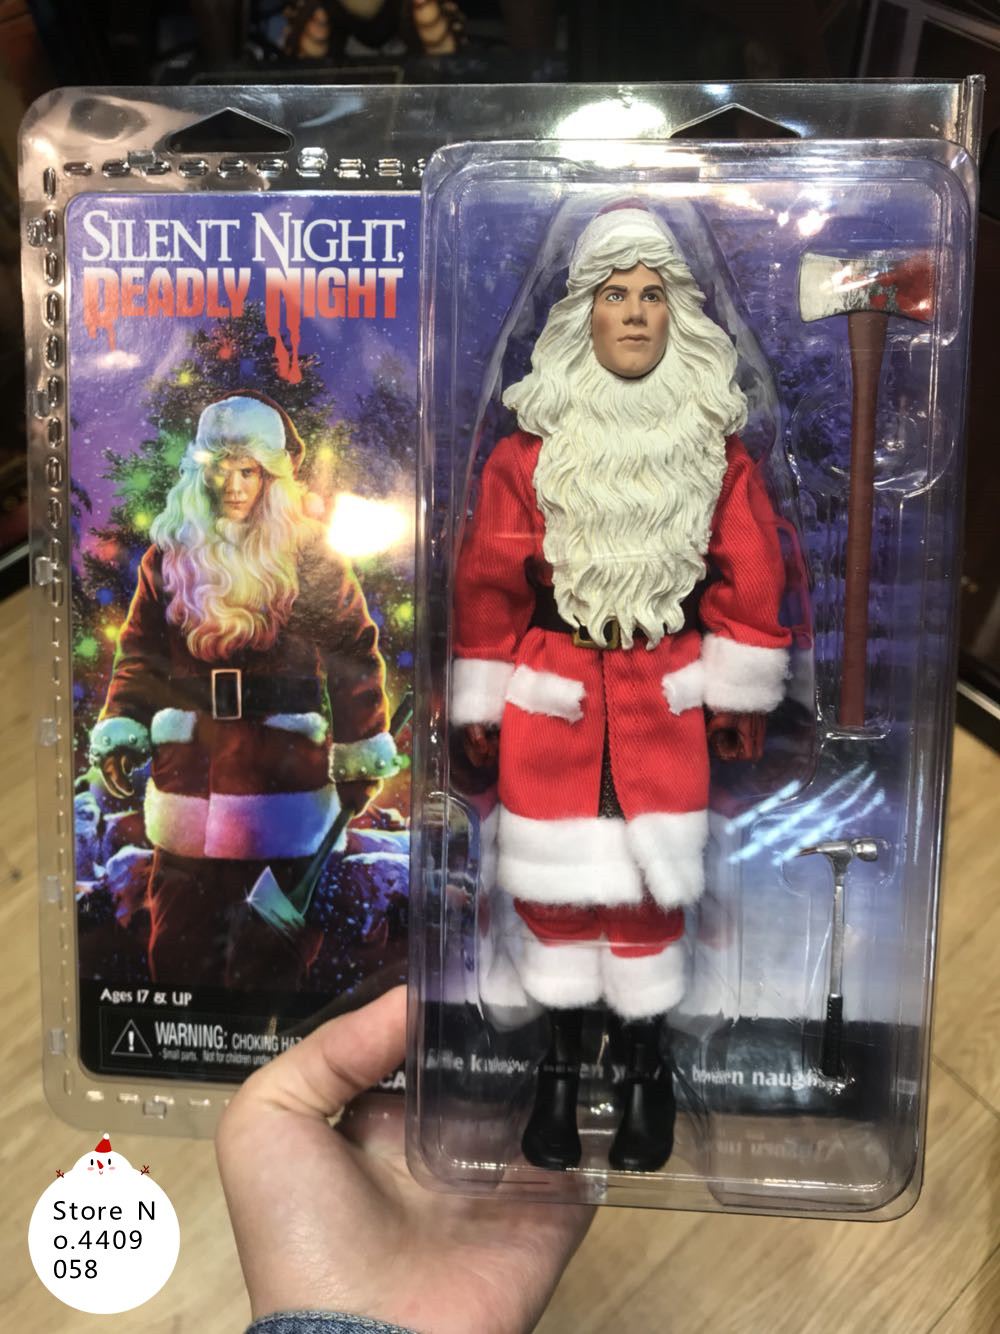 NECA Fiber Cloth Retro Series Christmas Night Silent Night Deadly Night Killer Movie Alloy Action Figure Model Toy trendy movie silent night jack skull keyring